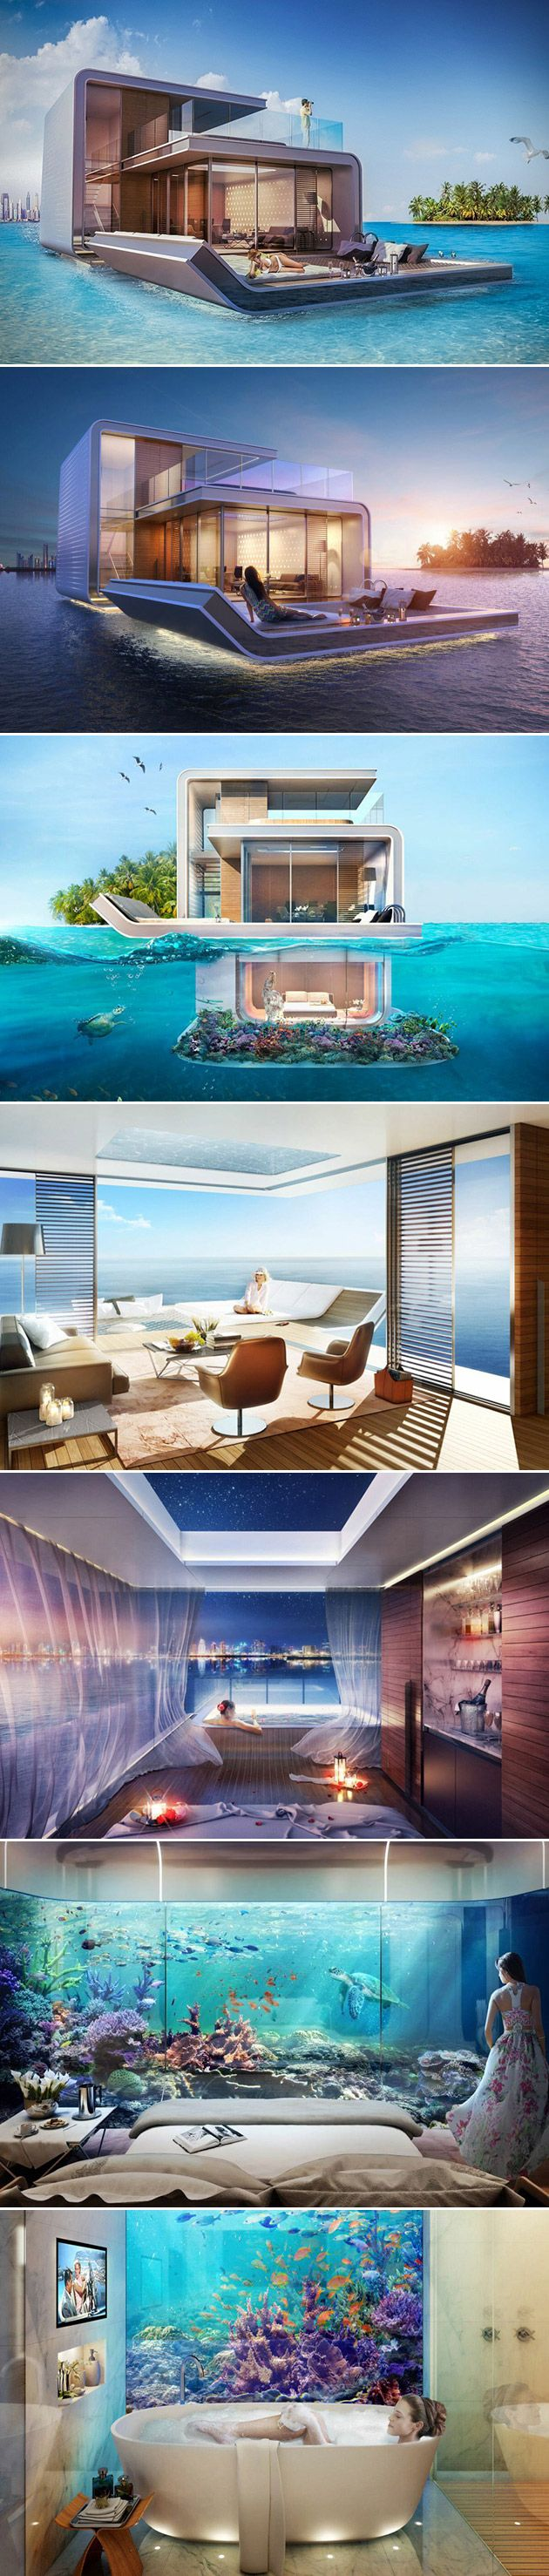 Technically the Floating Seahorse is classified as a boat, but it only takes one quick glance to see that the project is much more akin to a floating house. Designed by the team at Kleindienst Group, the project consists of 42 properties floating in the Persian Gulf of Dubai. The project is part of the Heart of Europe development, and offers up marine style retreats spanning 1,700 square feet of living space. Each residence features three levels, the bottom of which being under water.